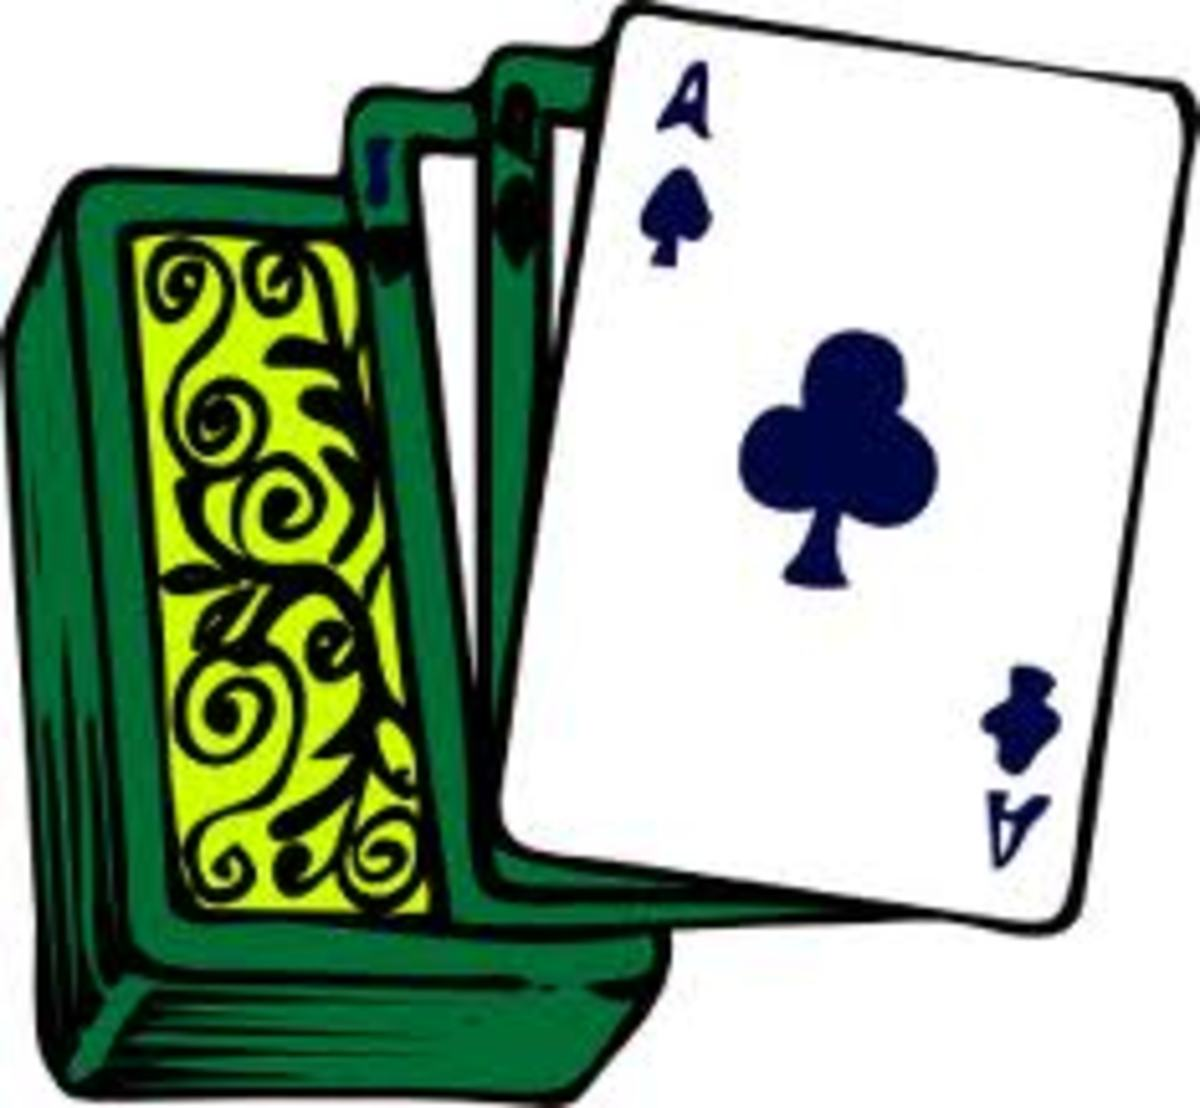 Color graphics image of playing cards